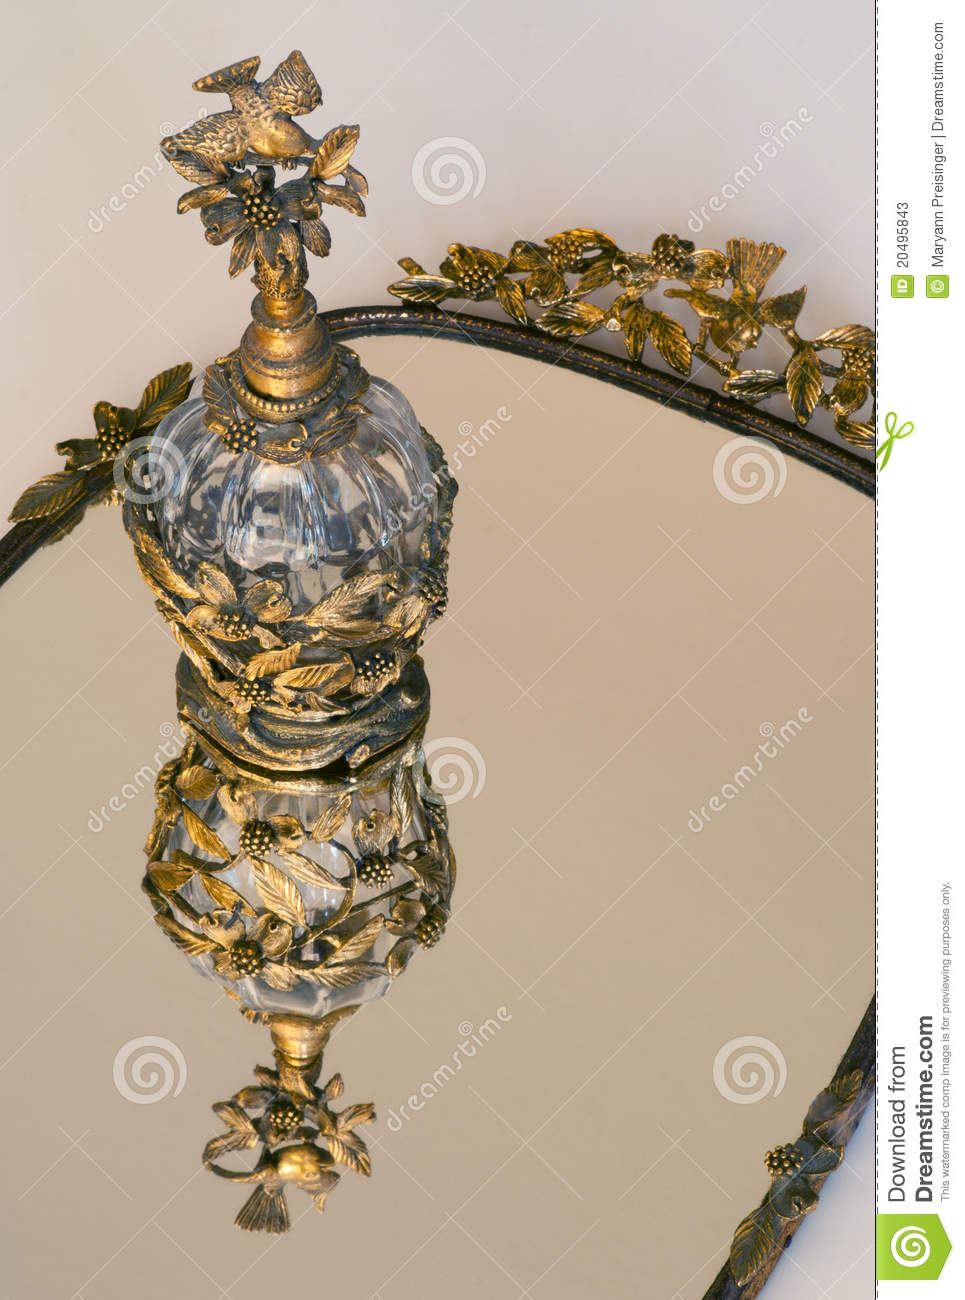 Gold Crystal Perfume On Vanity Mirror Stock Image Image Of Scent Tray 20495843